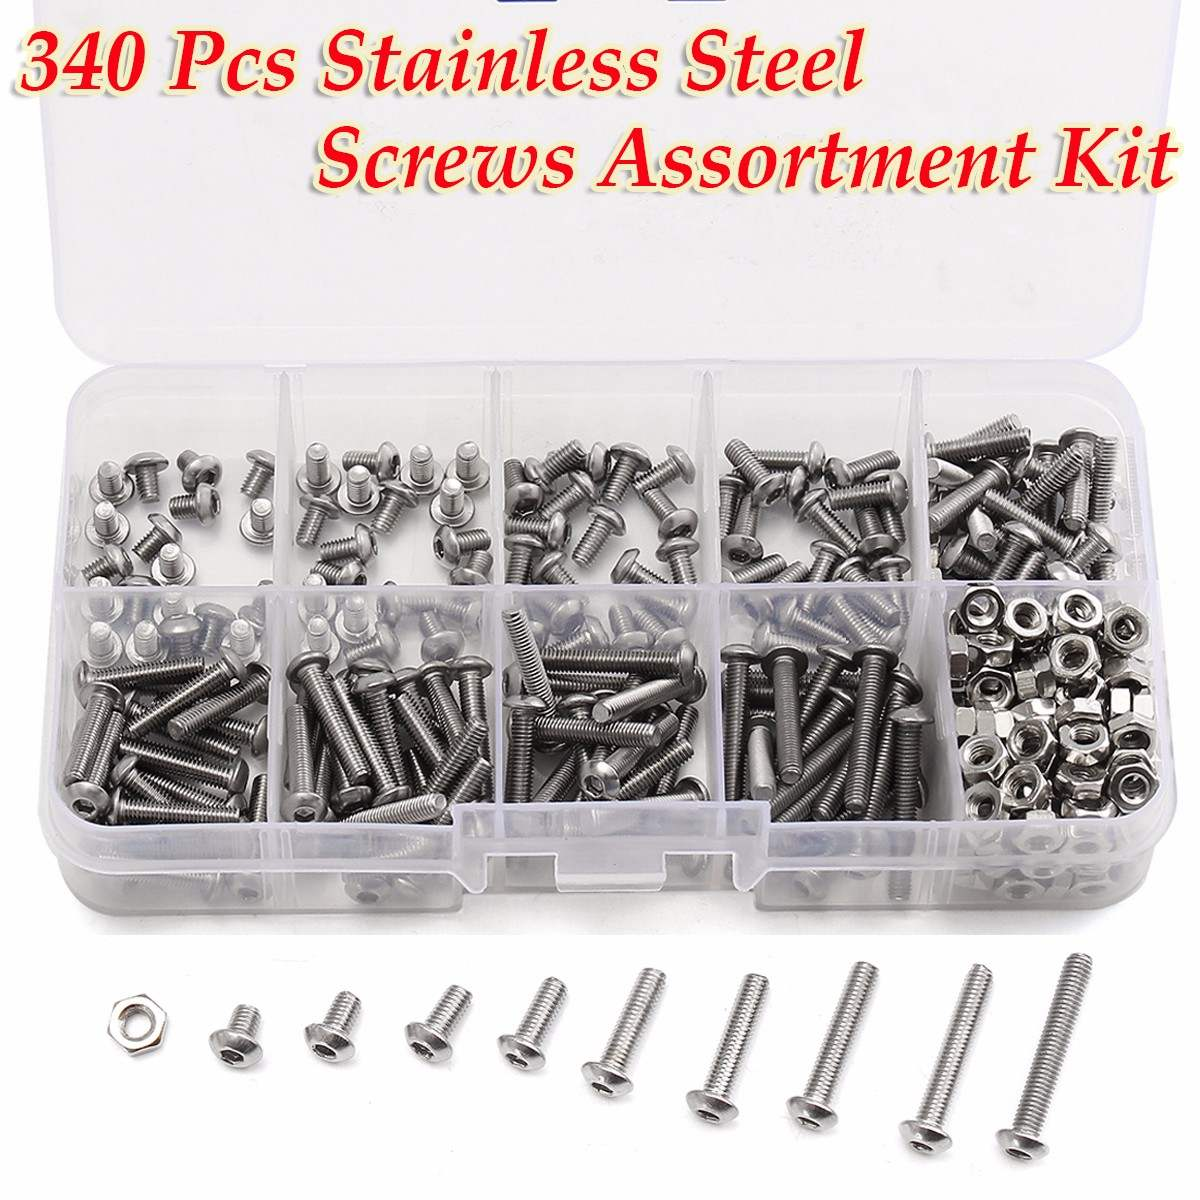 340pcs/set M3 Button Head Hex Socket Screw Bolt Nut Stainless Steel A2 Screws Nuts Assortment Kit Fastener Hardware 440pcs m3 m4 m5 a2 stainless steel iso7380 button head allen bolts hexagon socket screws with nuts assortment kit no 2345